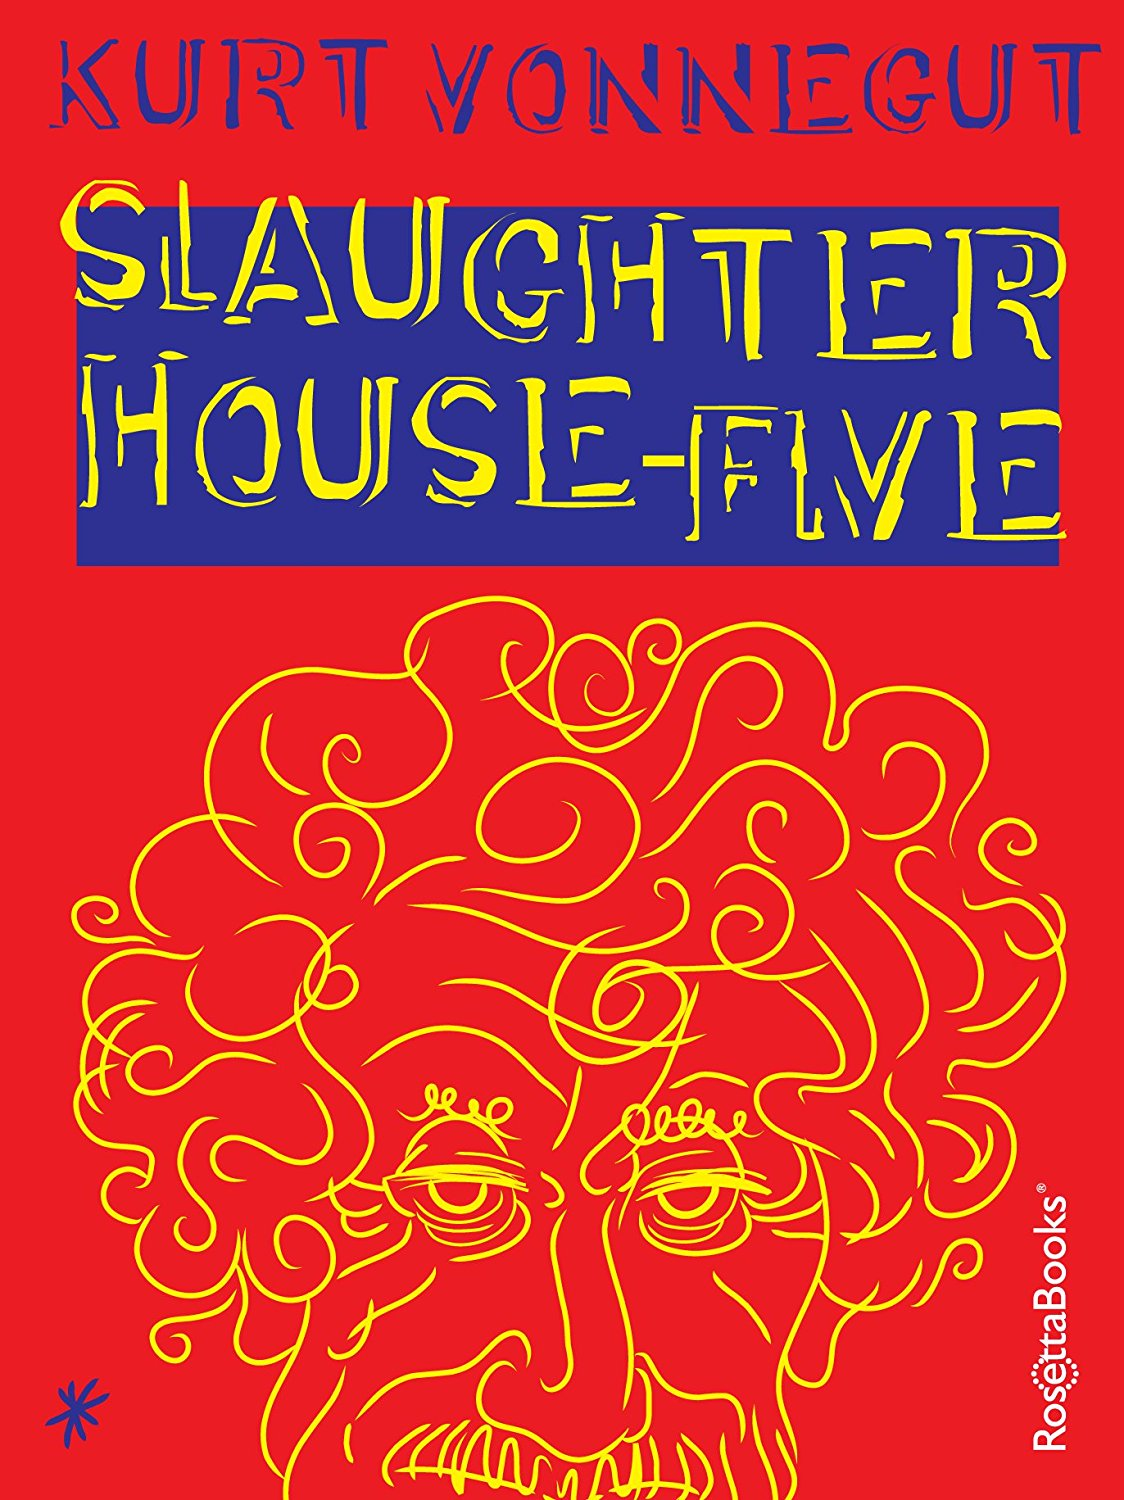 an analysis of the thoughtful laughter in slaughter house five by kurt vonnegut Slaughter house five in kurt vonnegut's slaughter house five, thoughtful laughter is presented to the reader to create an entertaining scene but also make the reader meditate on the thought that there is more to the laughter than just a joke.